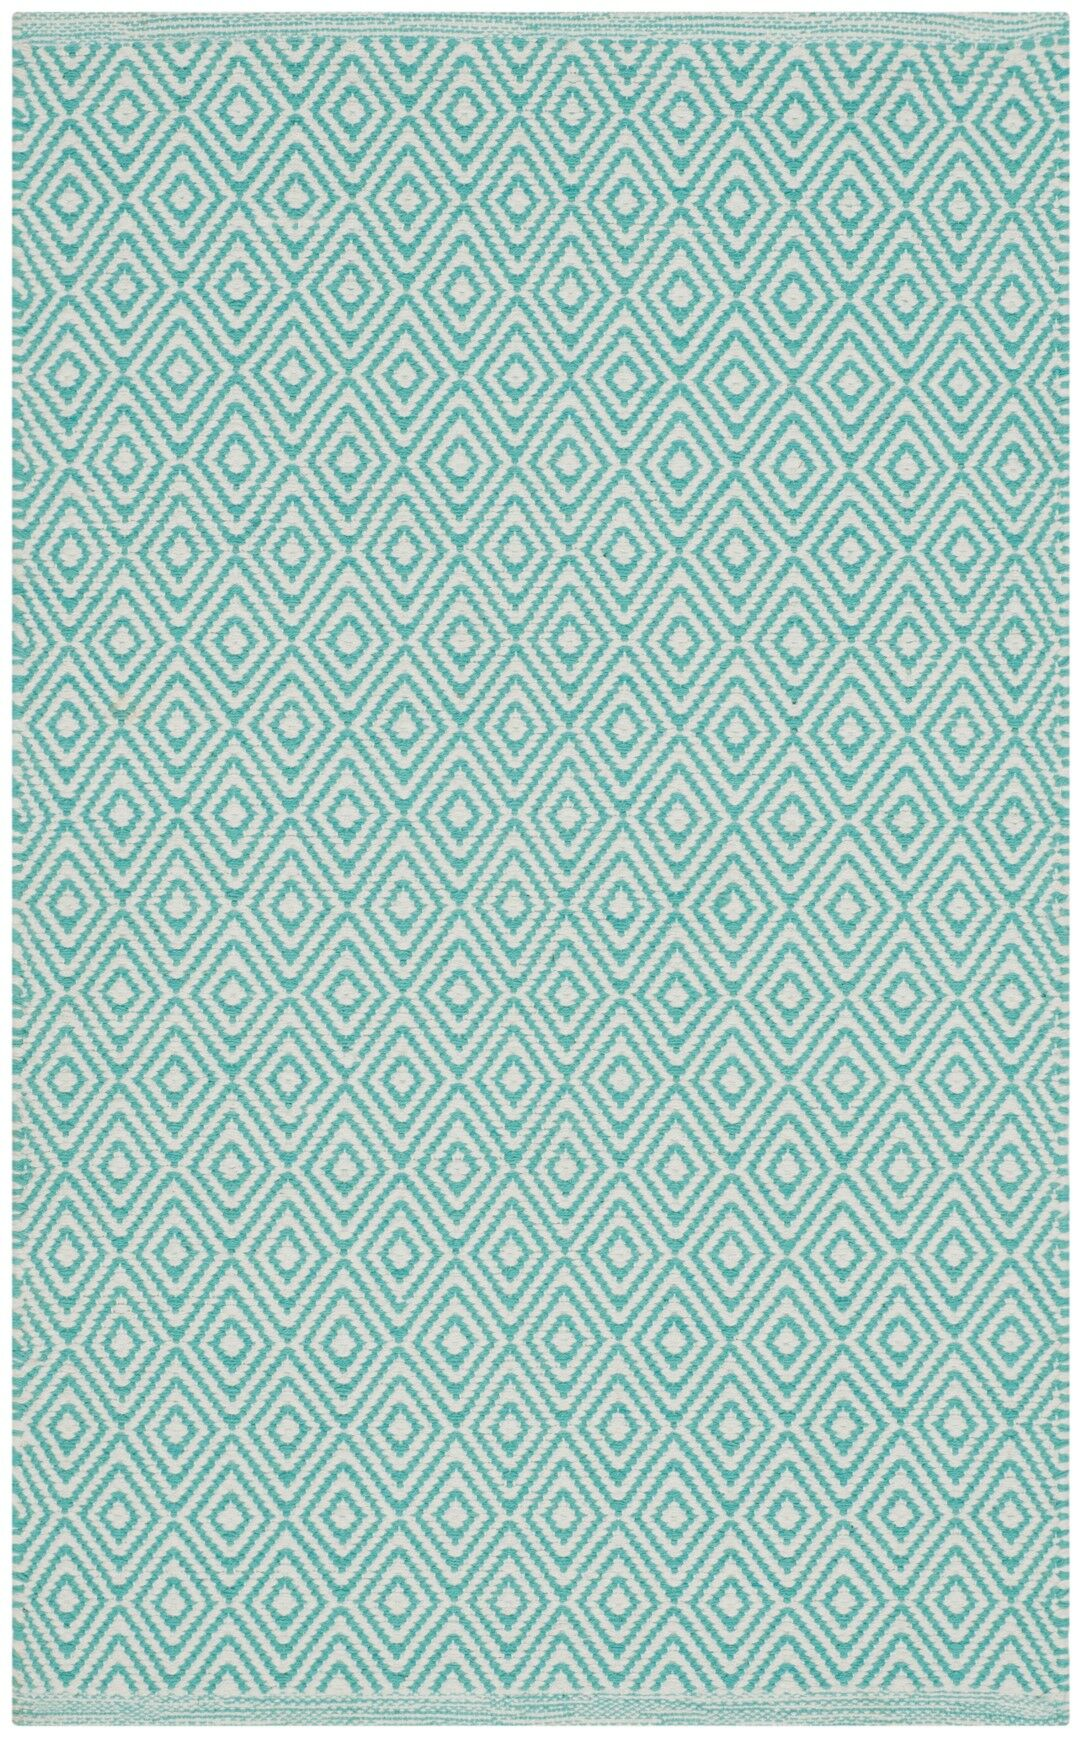 Sessums Hand-Woven Ivory/Aqua Area Rug Rug Size: Rectangle 4' x 6'